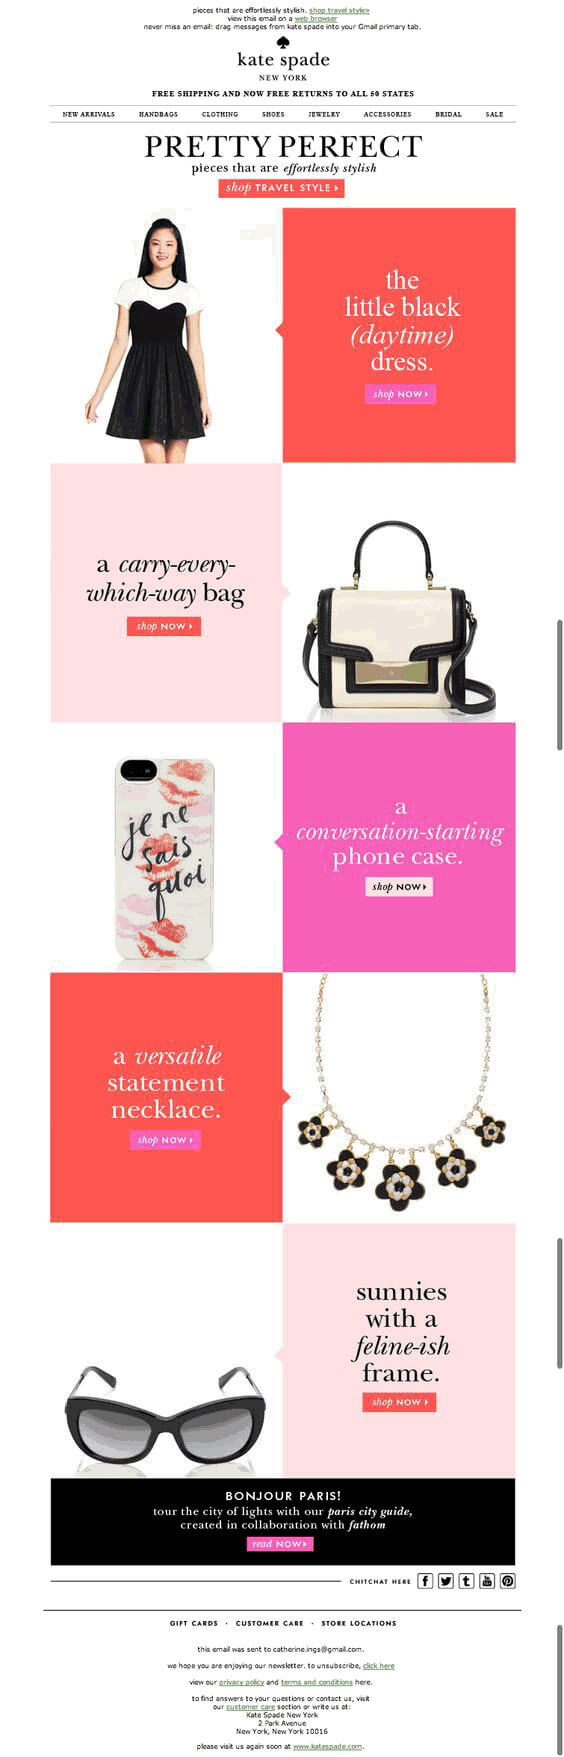 Use-of-color-email-example-Kate Spade